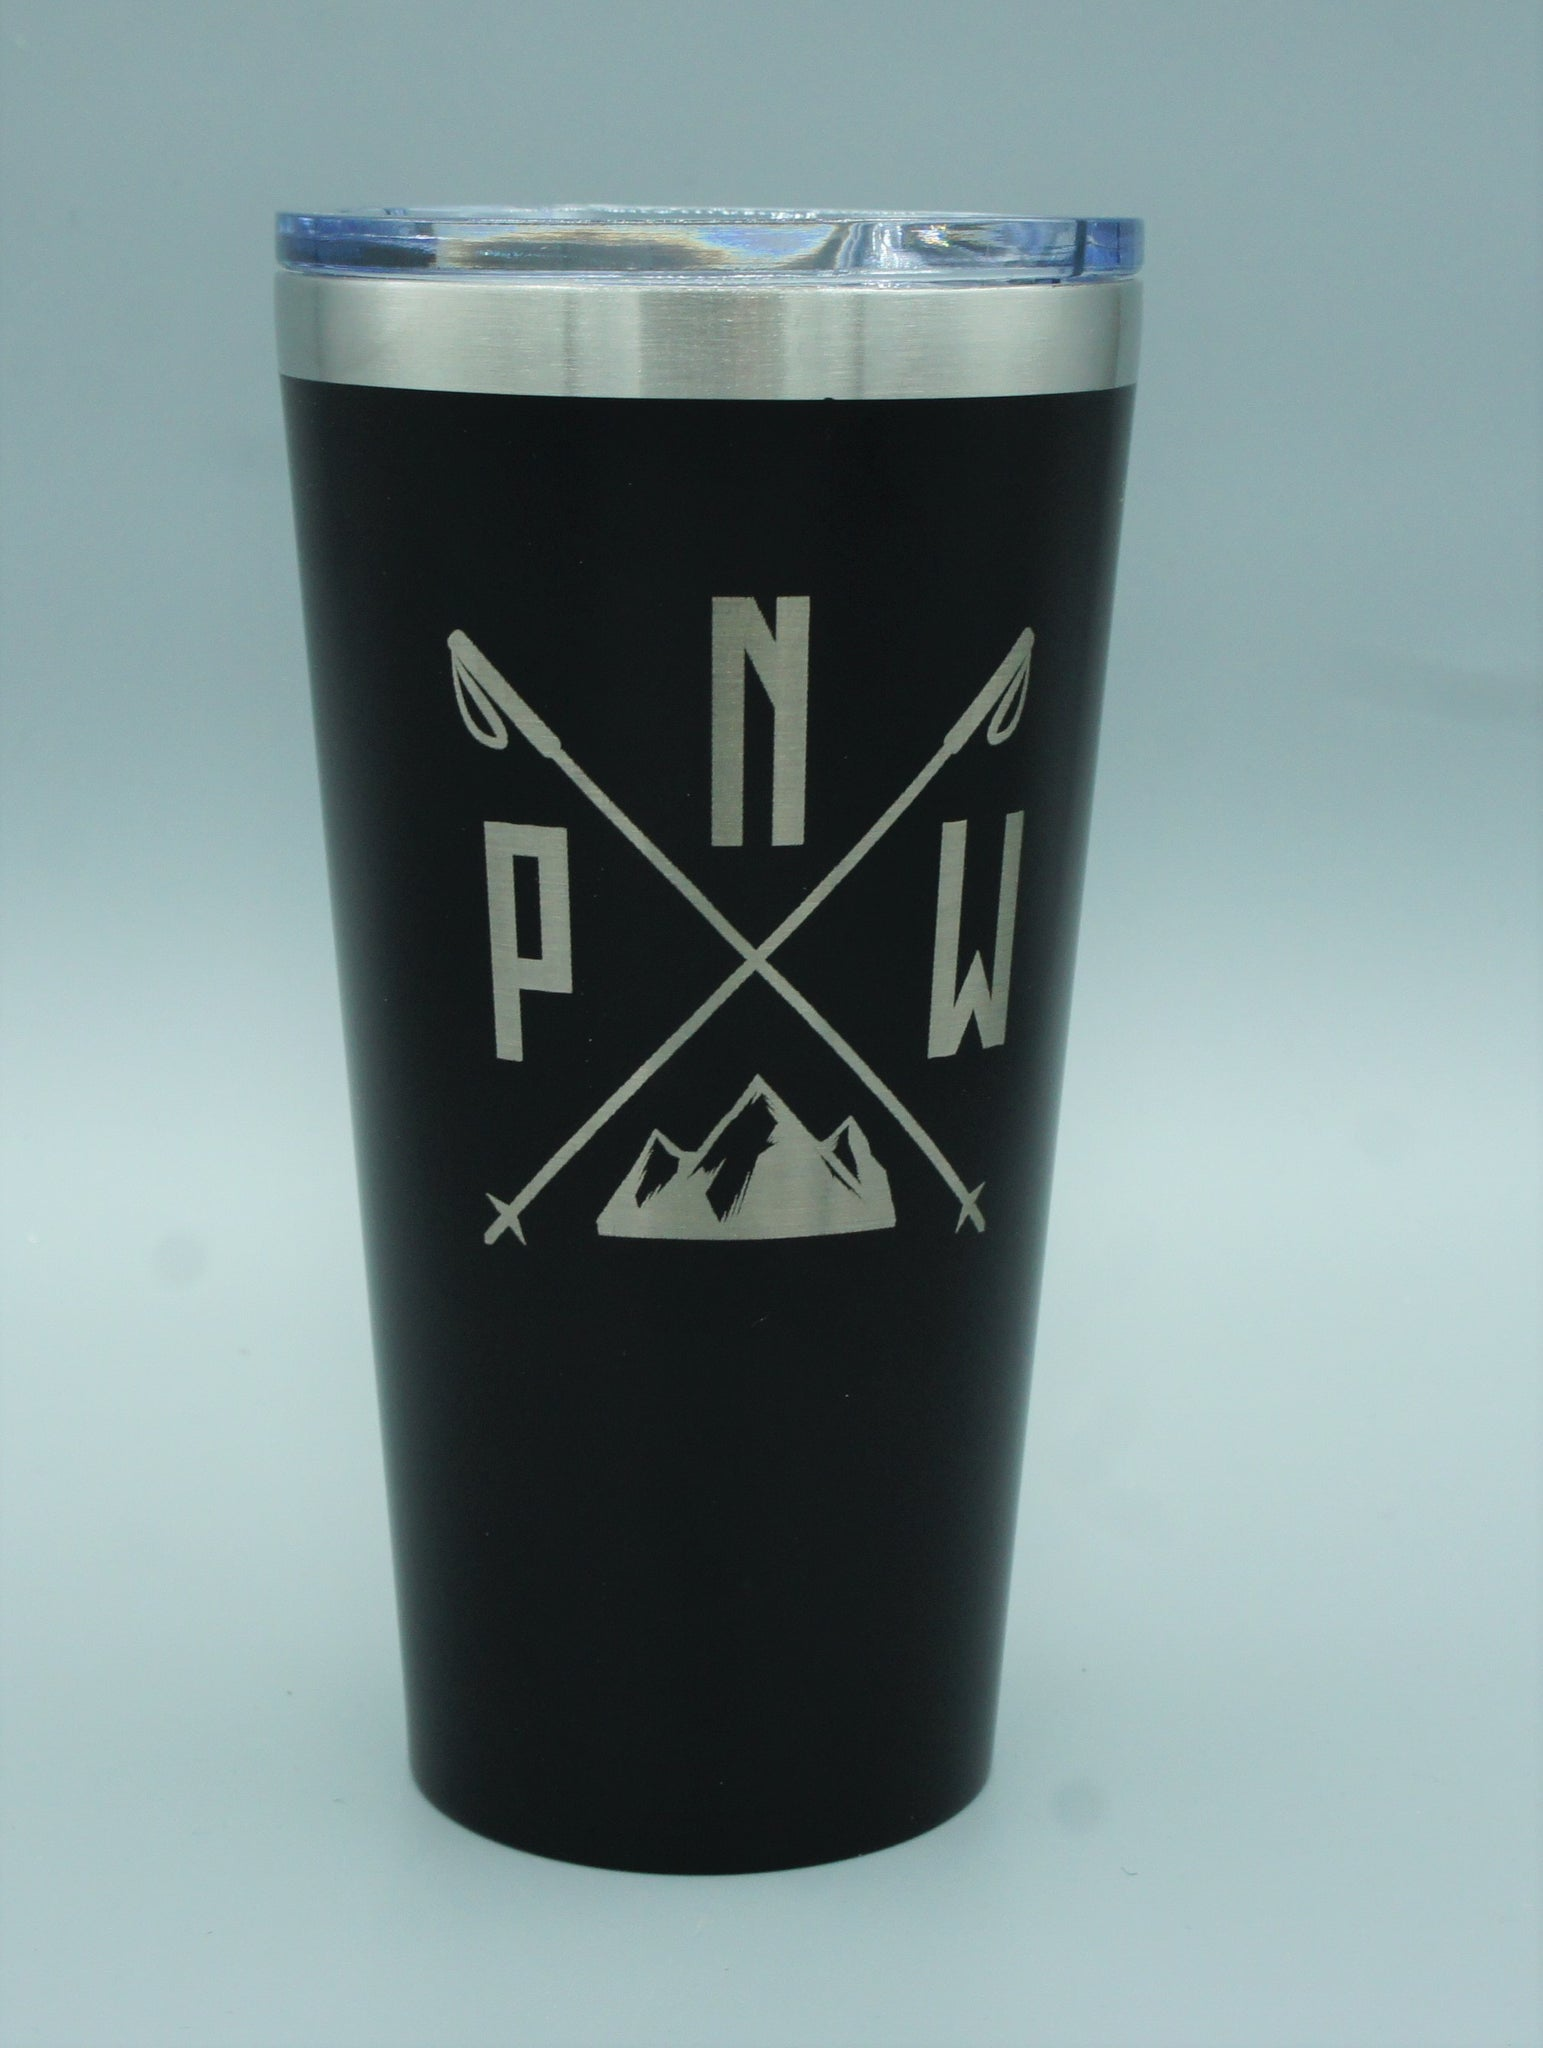 Stainless Steel Pint Glass - PNW